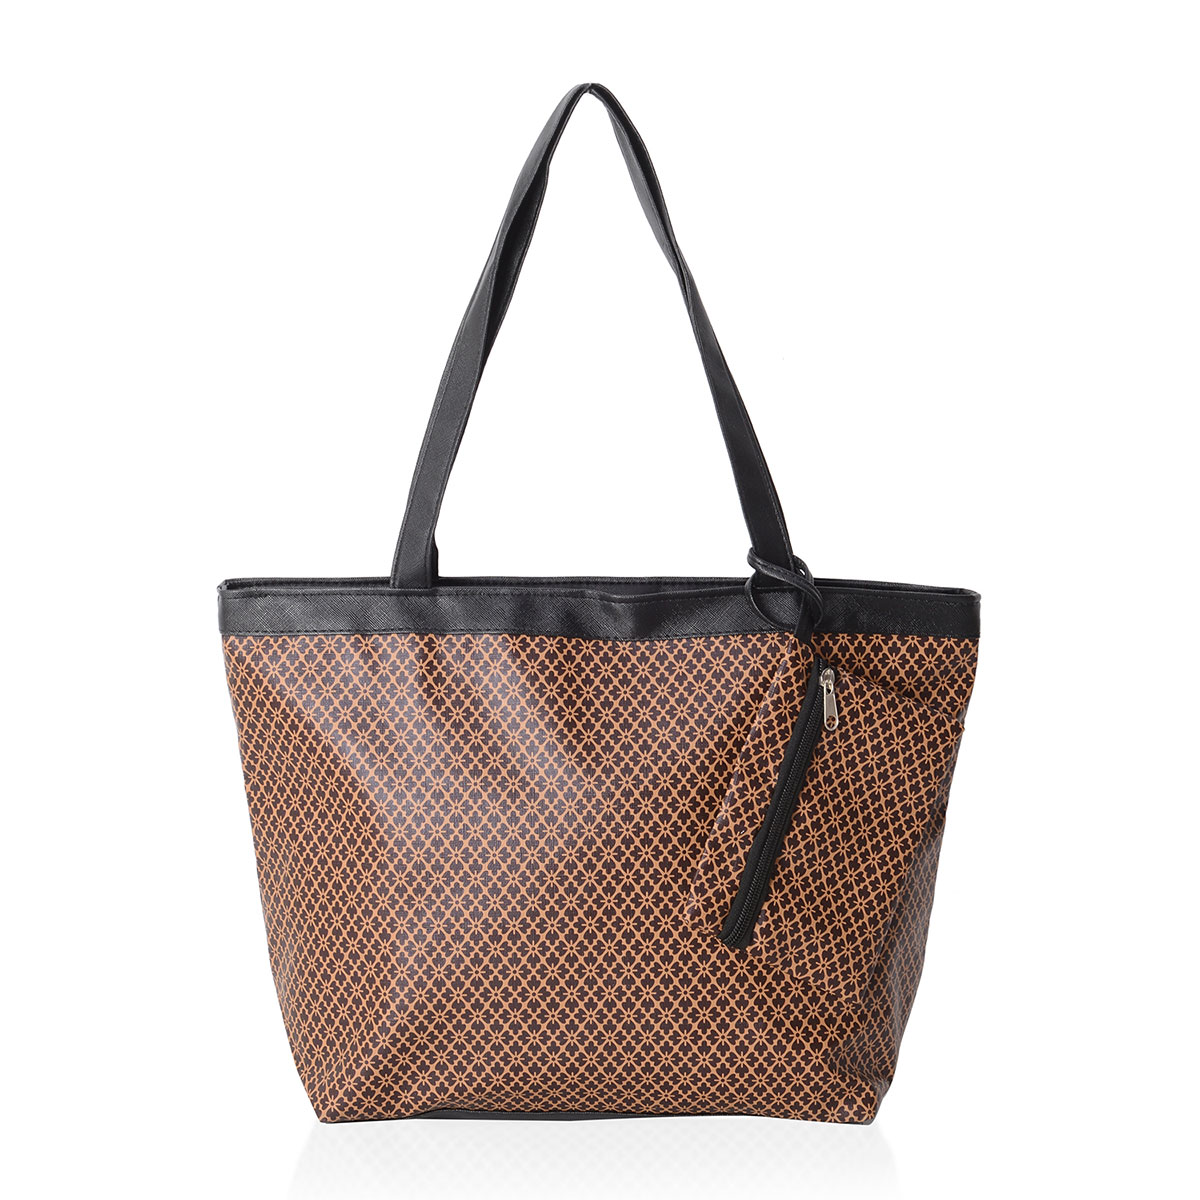 8e7fe223be Brown and Camel Floral Pattern Satin Black Trimmed Tote Bag (15.5x4.5x10  in) with Matching Removable Coin Bag (6x4.5 in)